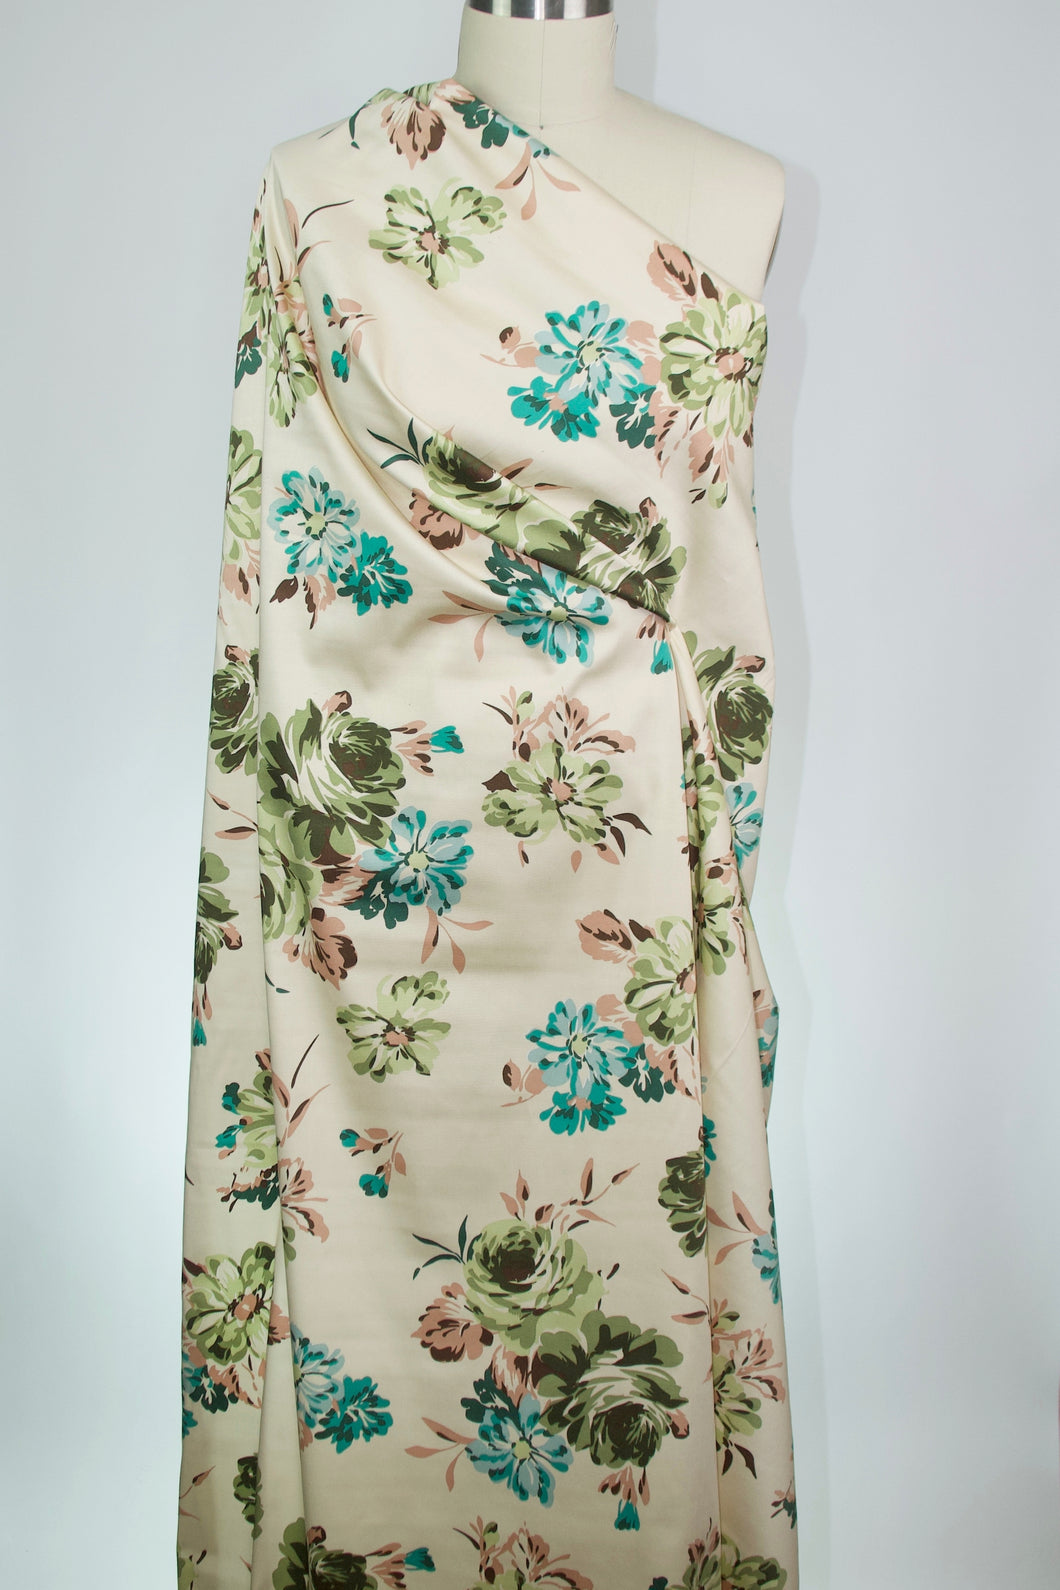 Soft Florals Cotton Stretch Sateen - Teals/Greens/Browns on Cream